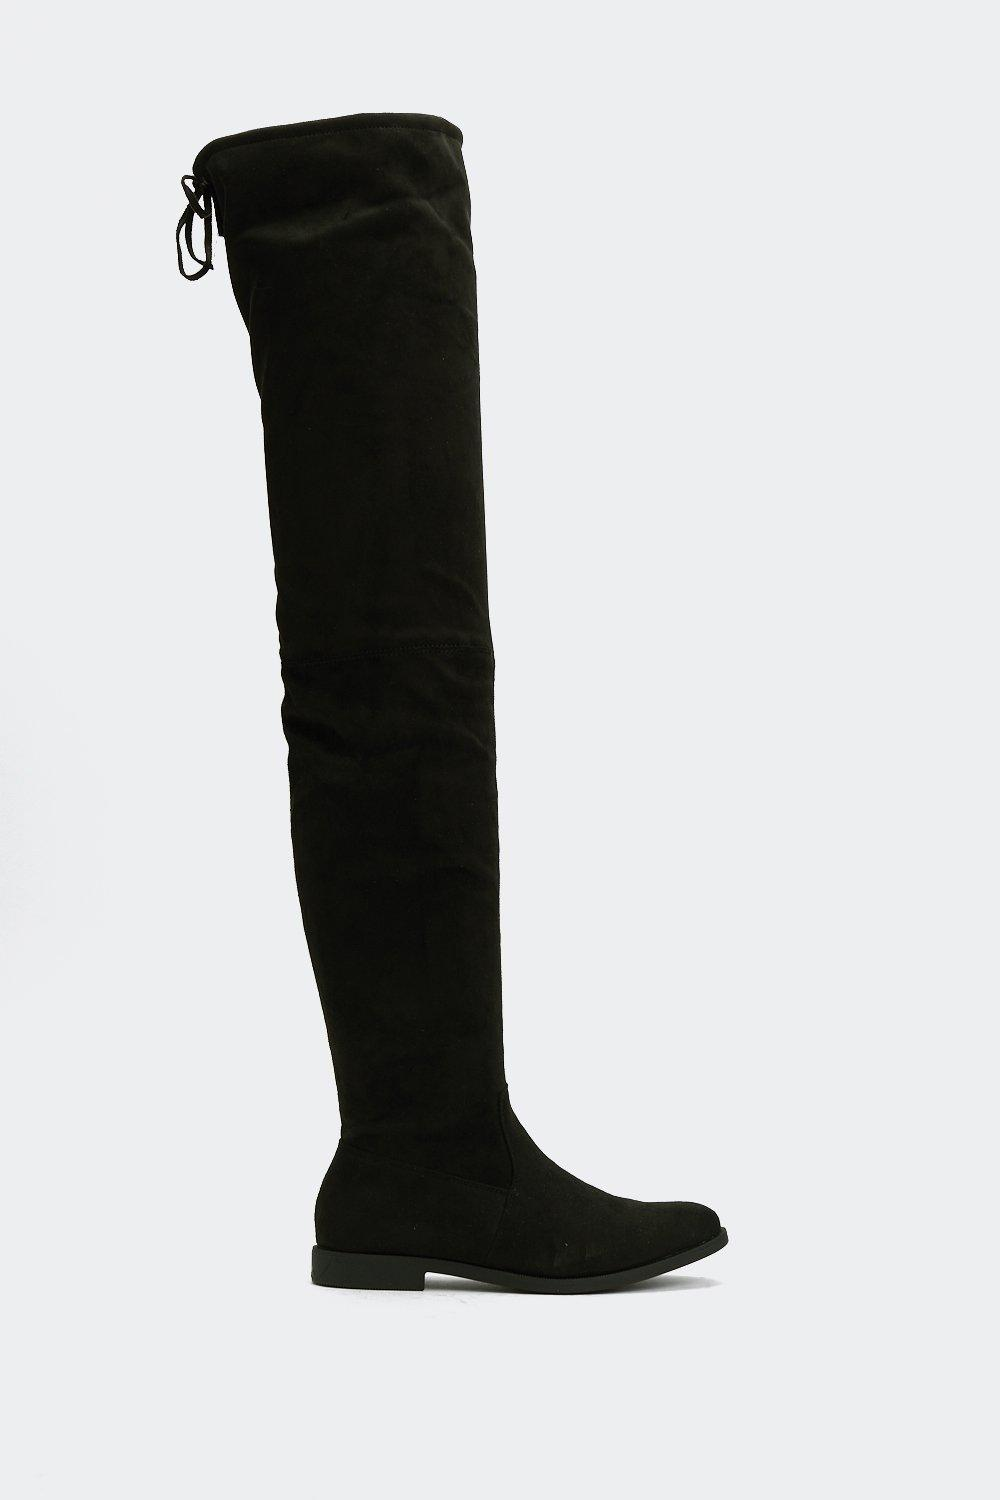 Give It All You've Got Thigh High Boot by Nasty Gal